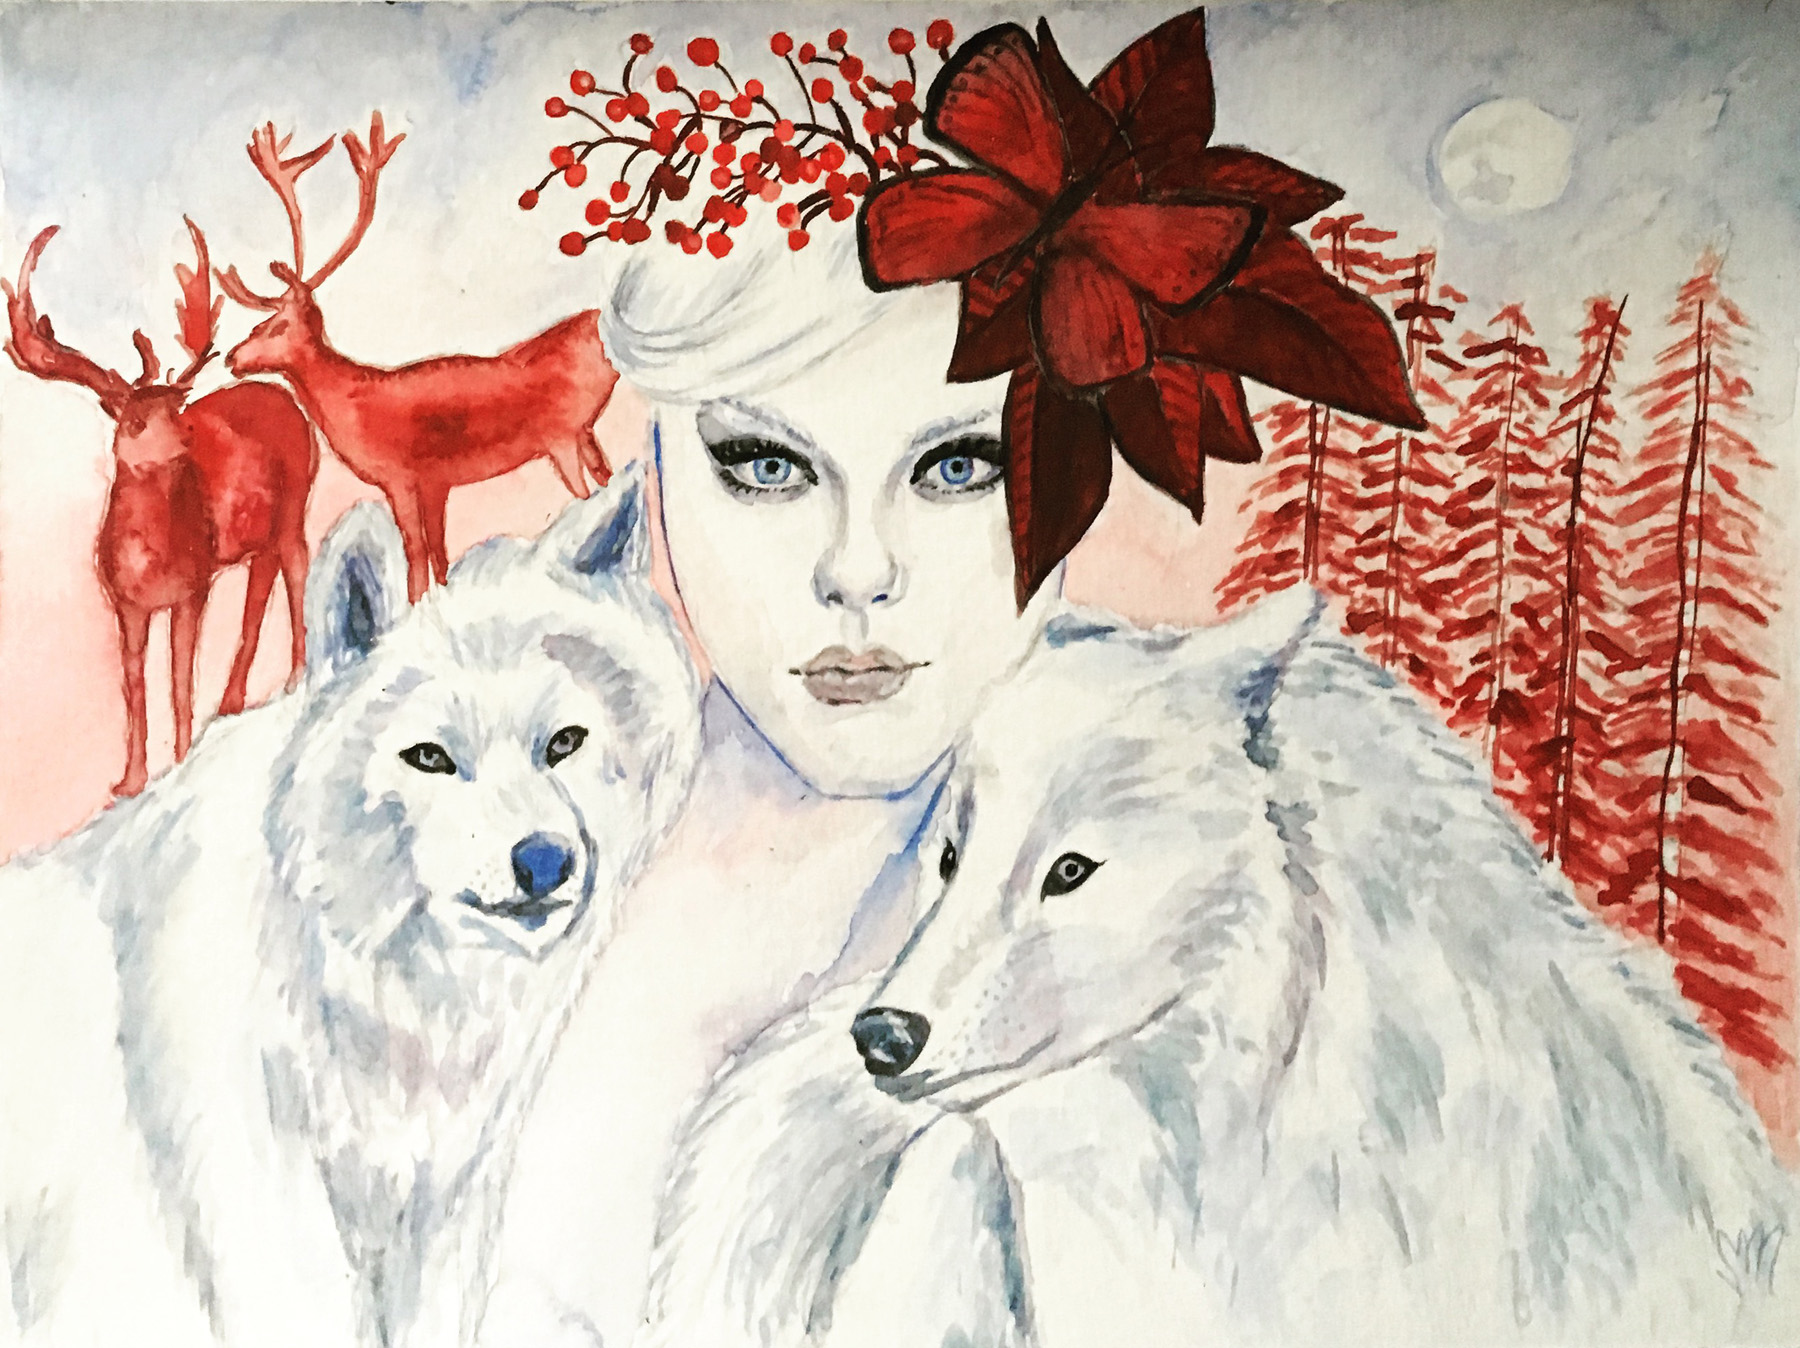 Winter Princess (Inspired by Jessica Stam)